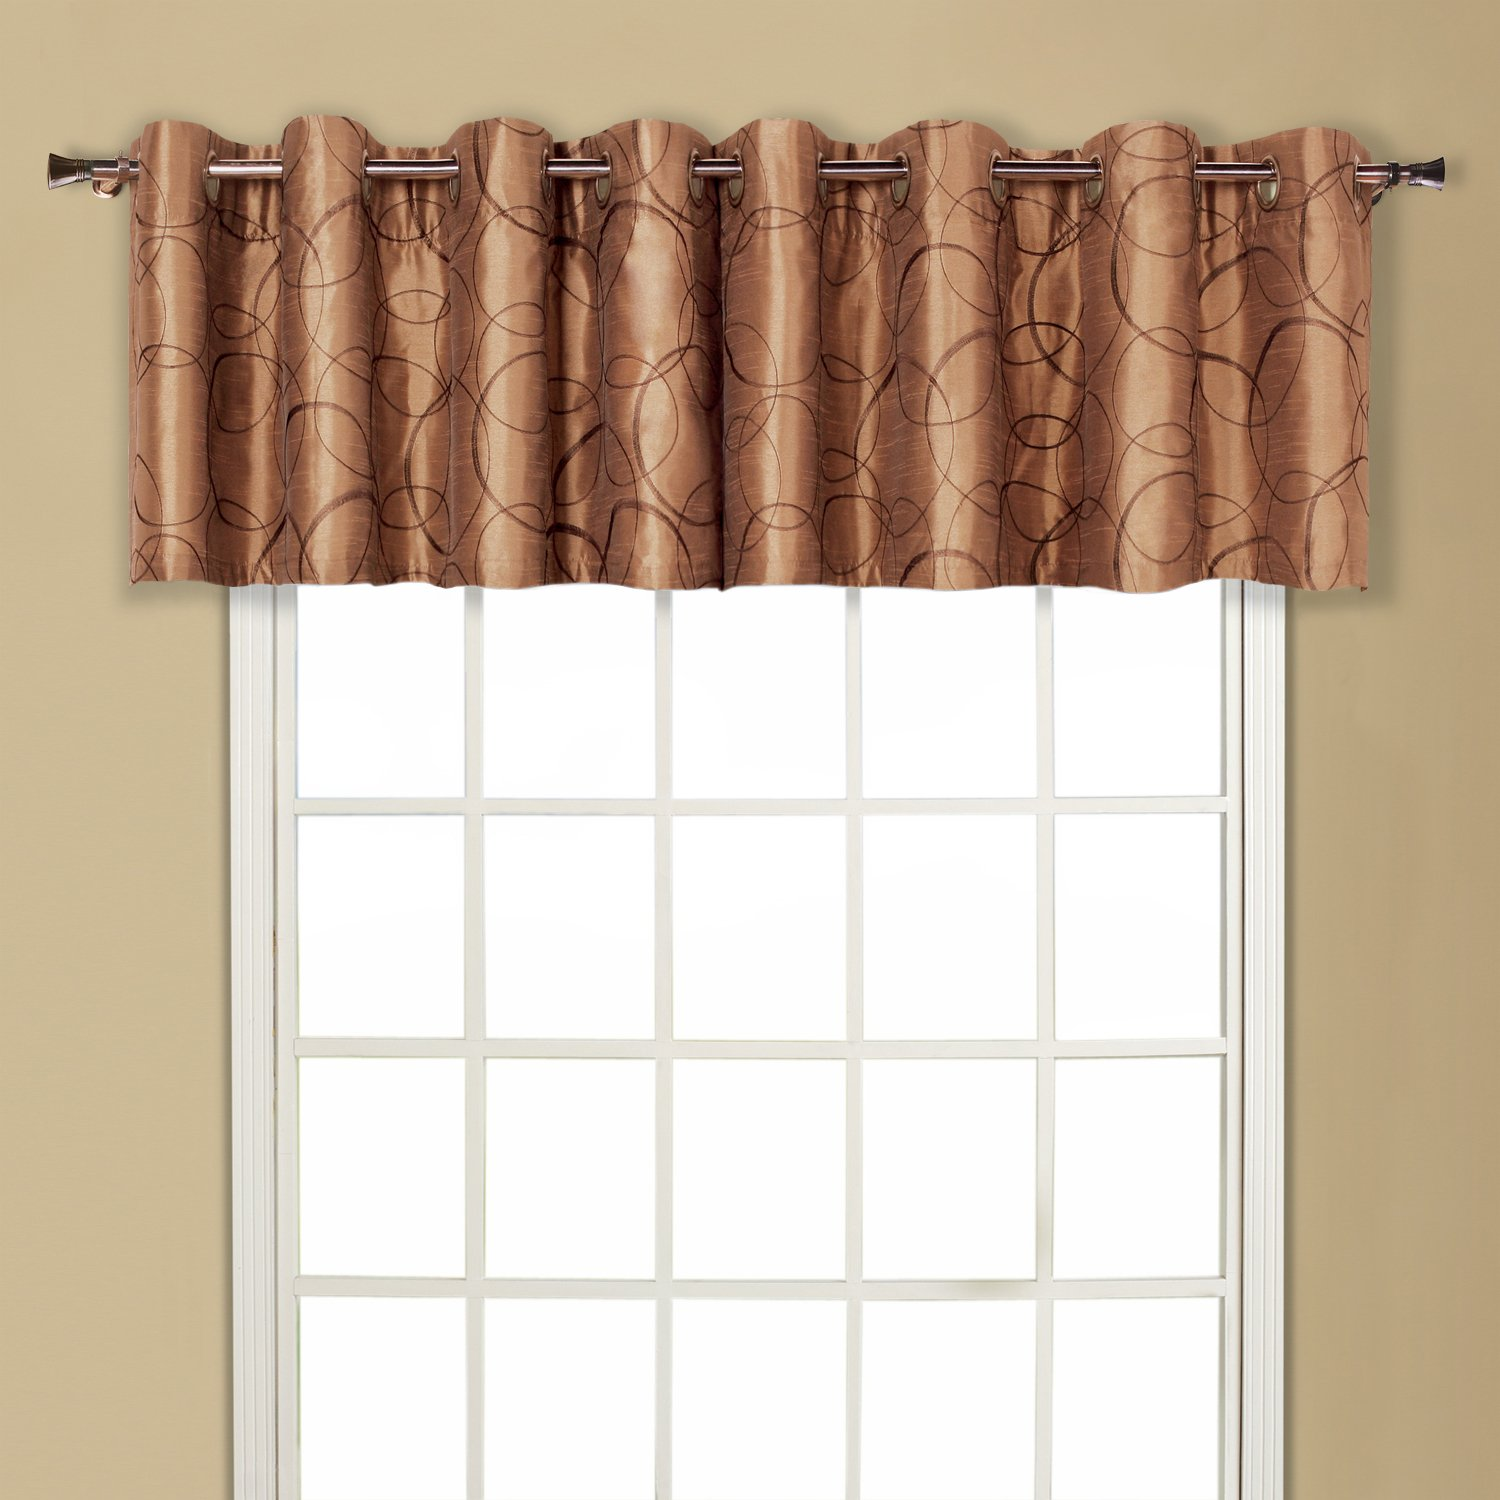 United Curtain Sinclair Embroidered Grommet Valance, 54 by 18-Inch, Chocolate SCVACH